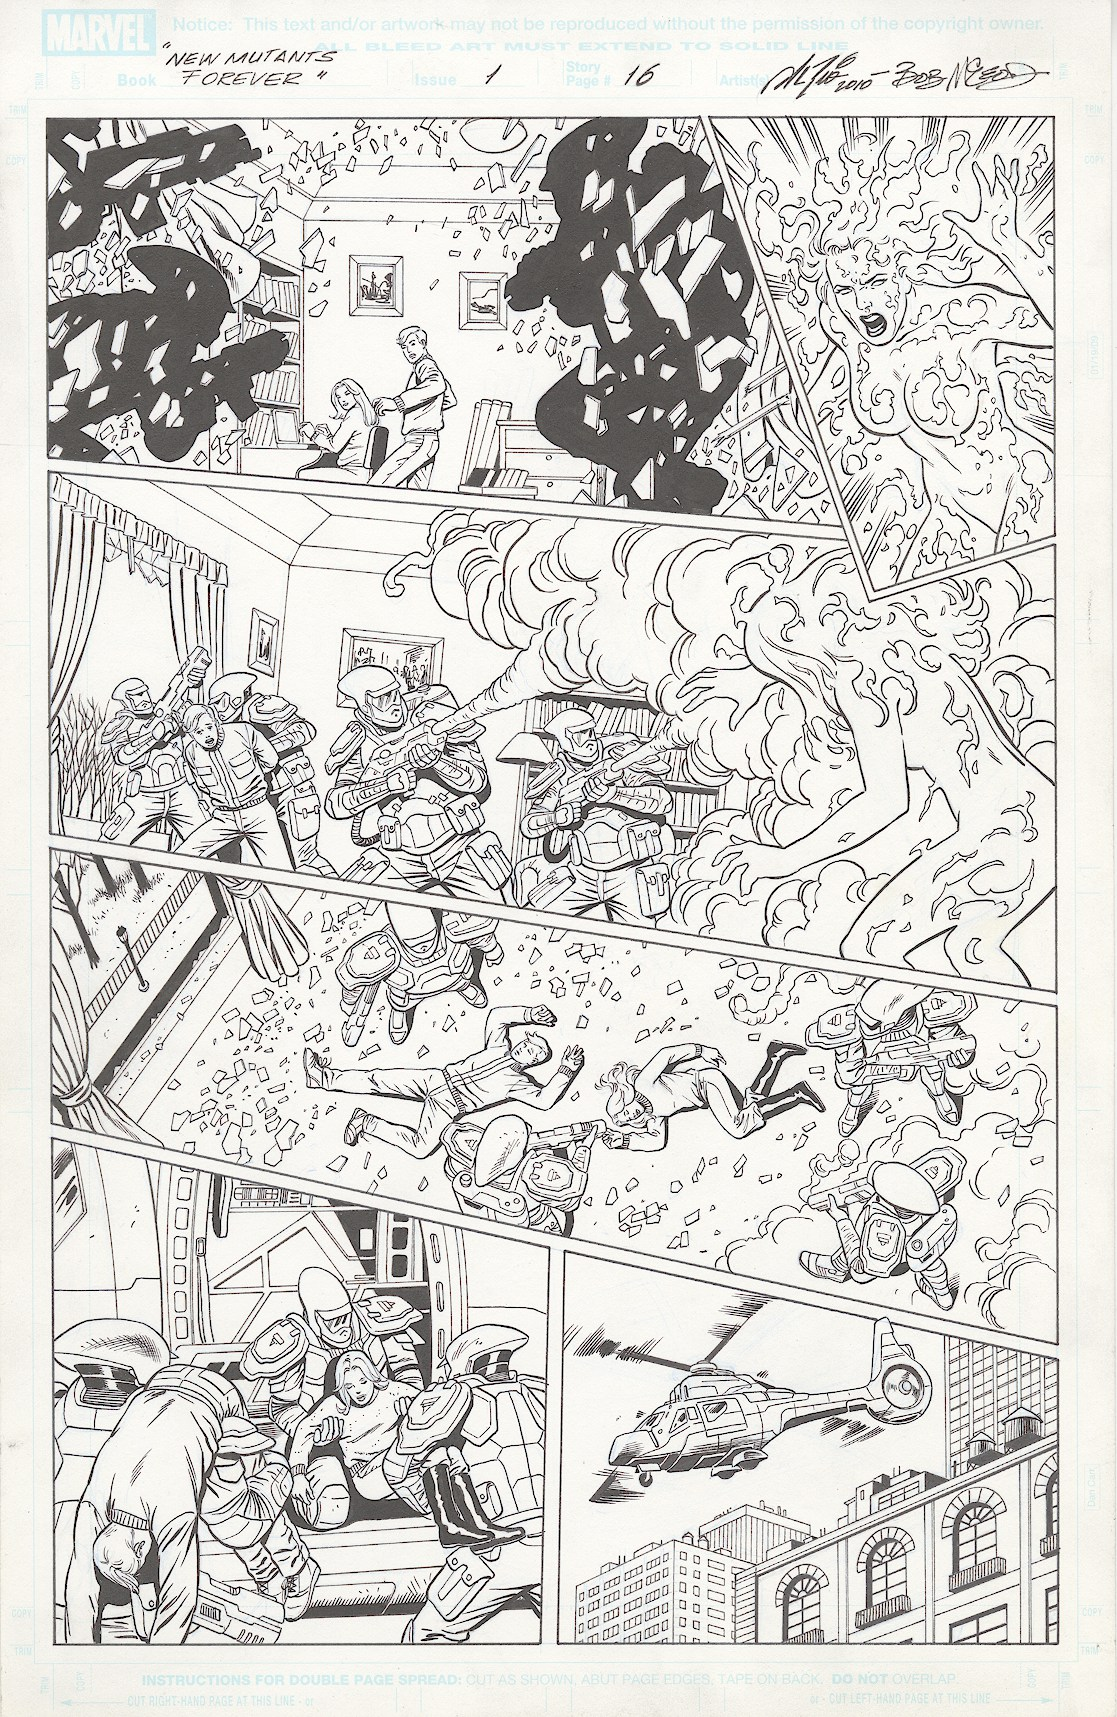 New Mutants Forever #1, Page 16